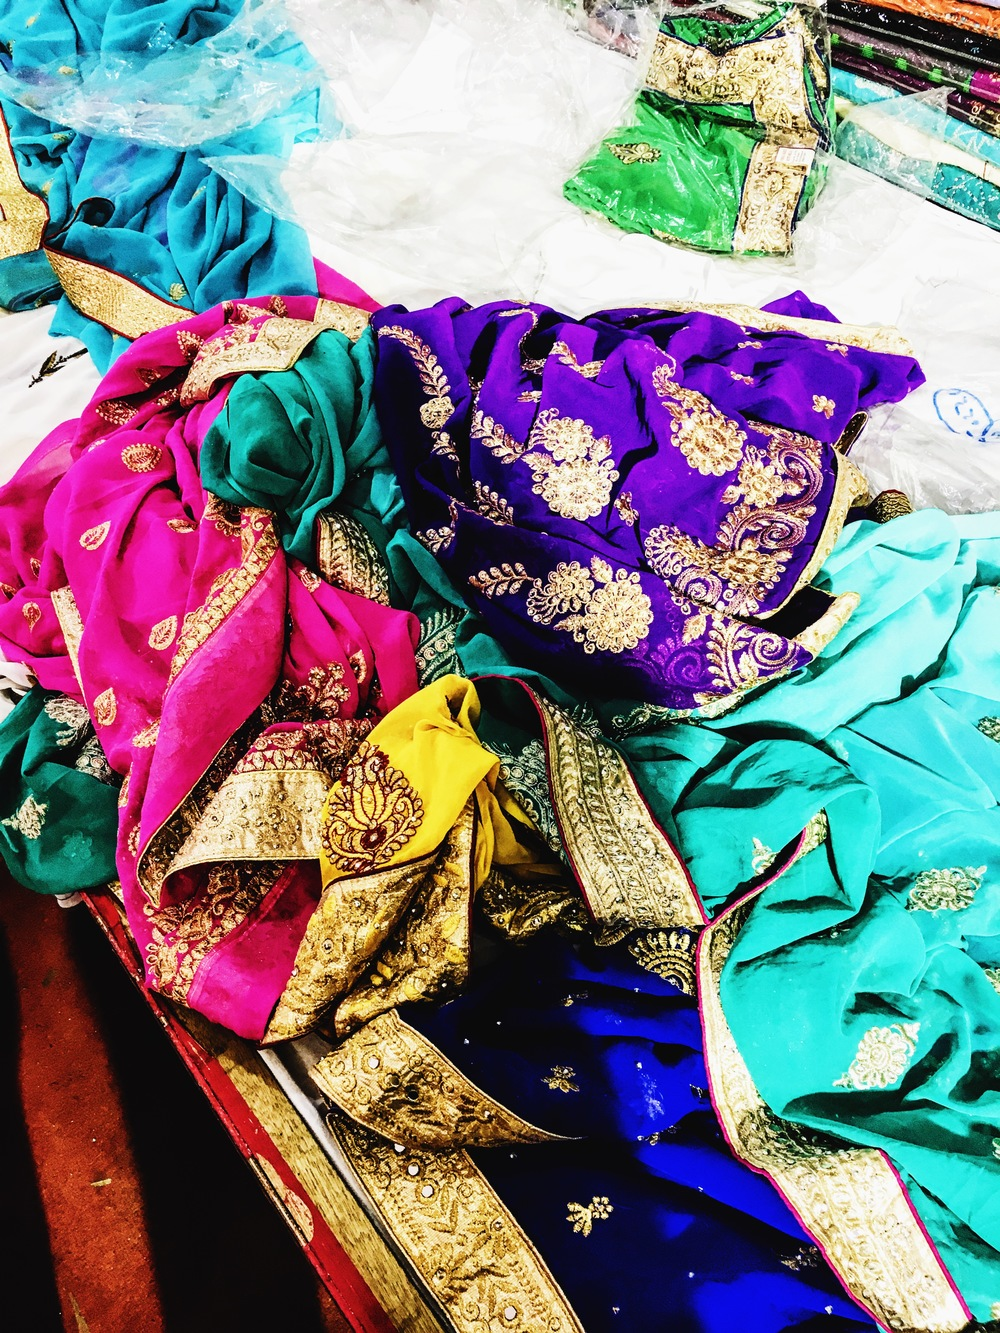 a colorful pile of saris we played dress up in (hehe oops)